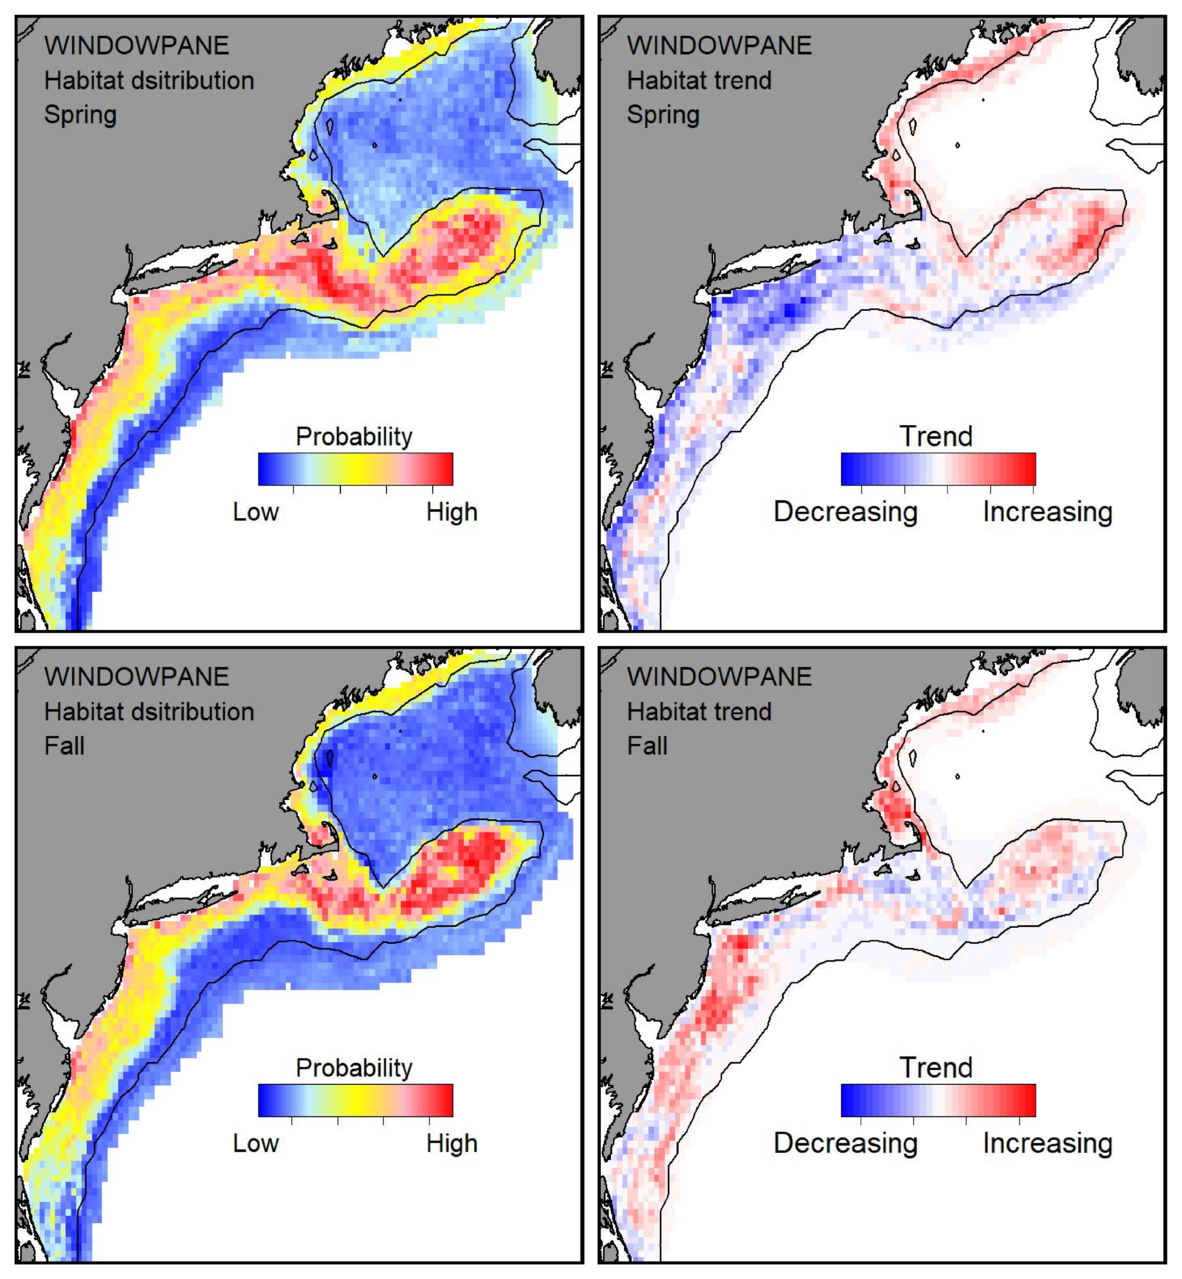 Probable habitat distribution for windowpane flounder showing the highest concentration and increasing trend in the Gulf of Maine during the spring. Bottom row: Probable habitat distribution for windowpane flounder showing the highest concentration and increasing trend in the Gulf of Maine during the fall.